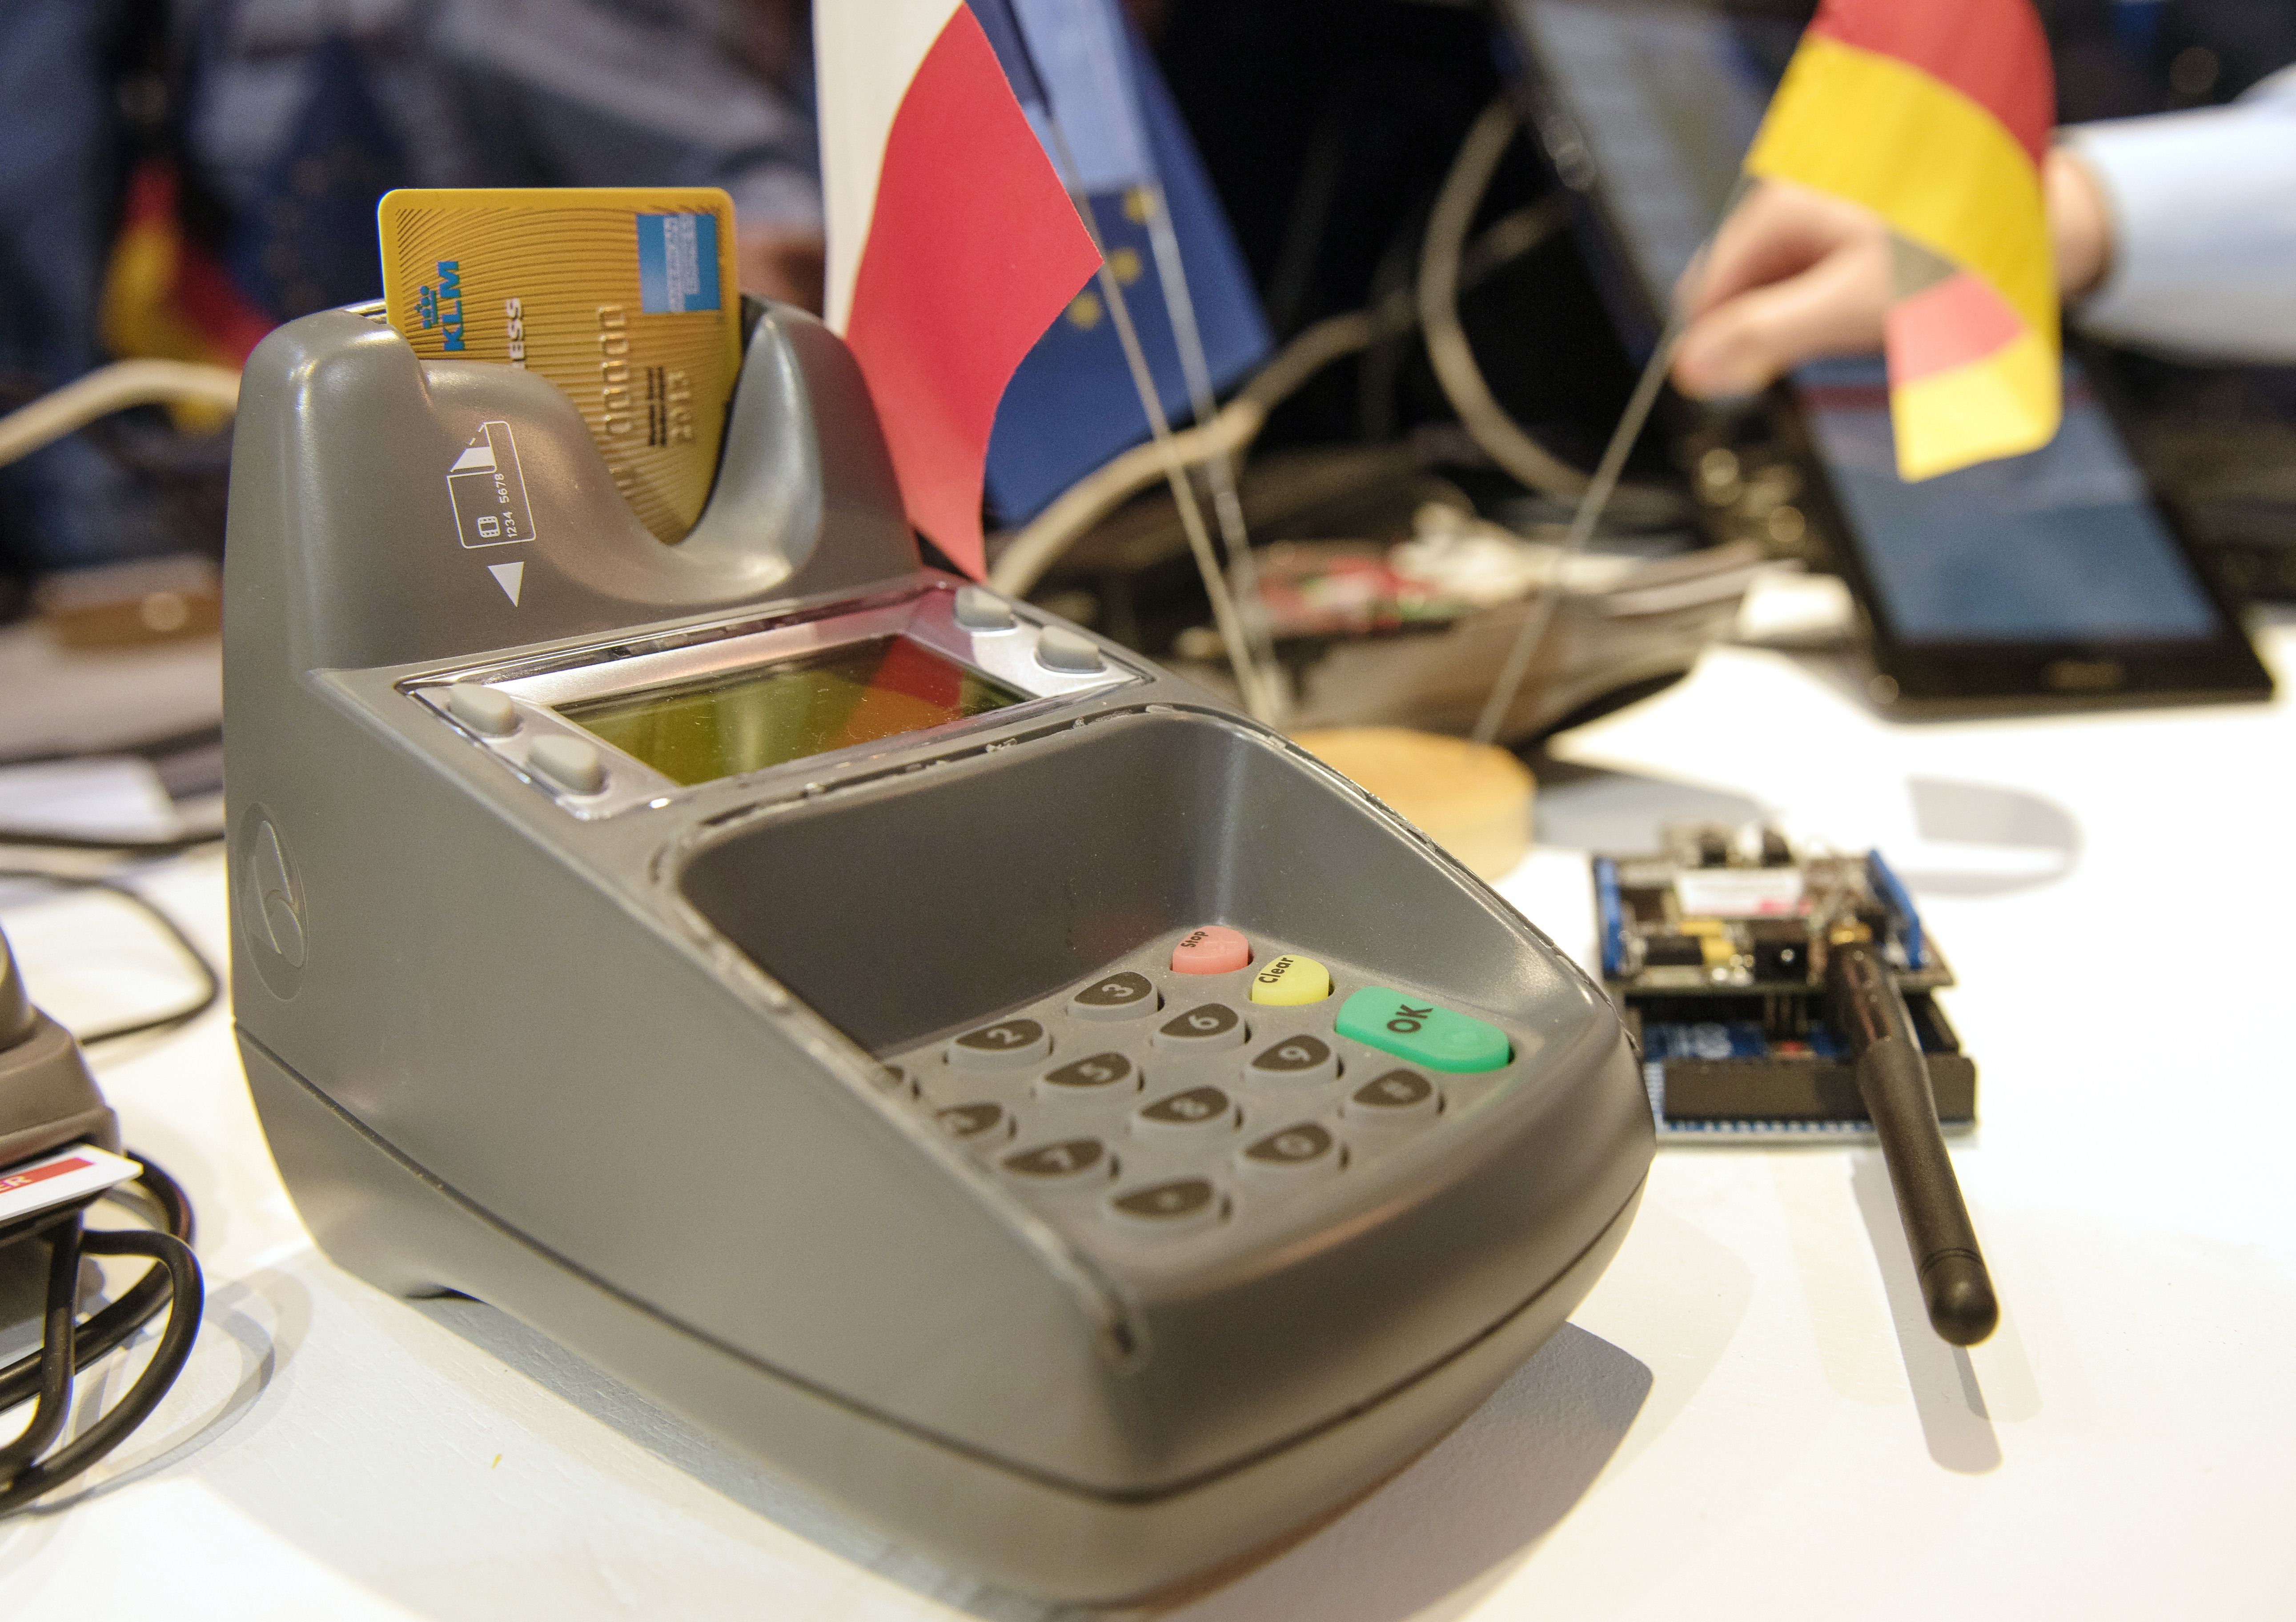 FRANCE-FIC2015-CYBERSECURITY